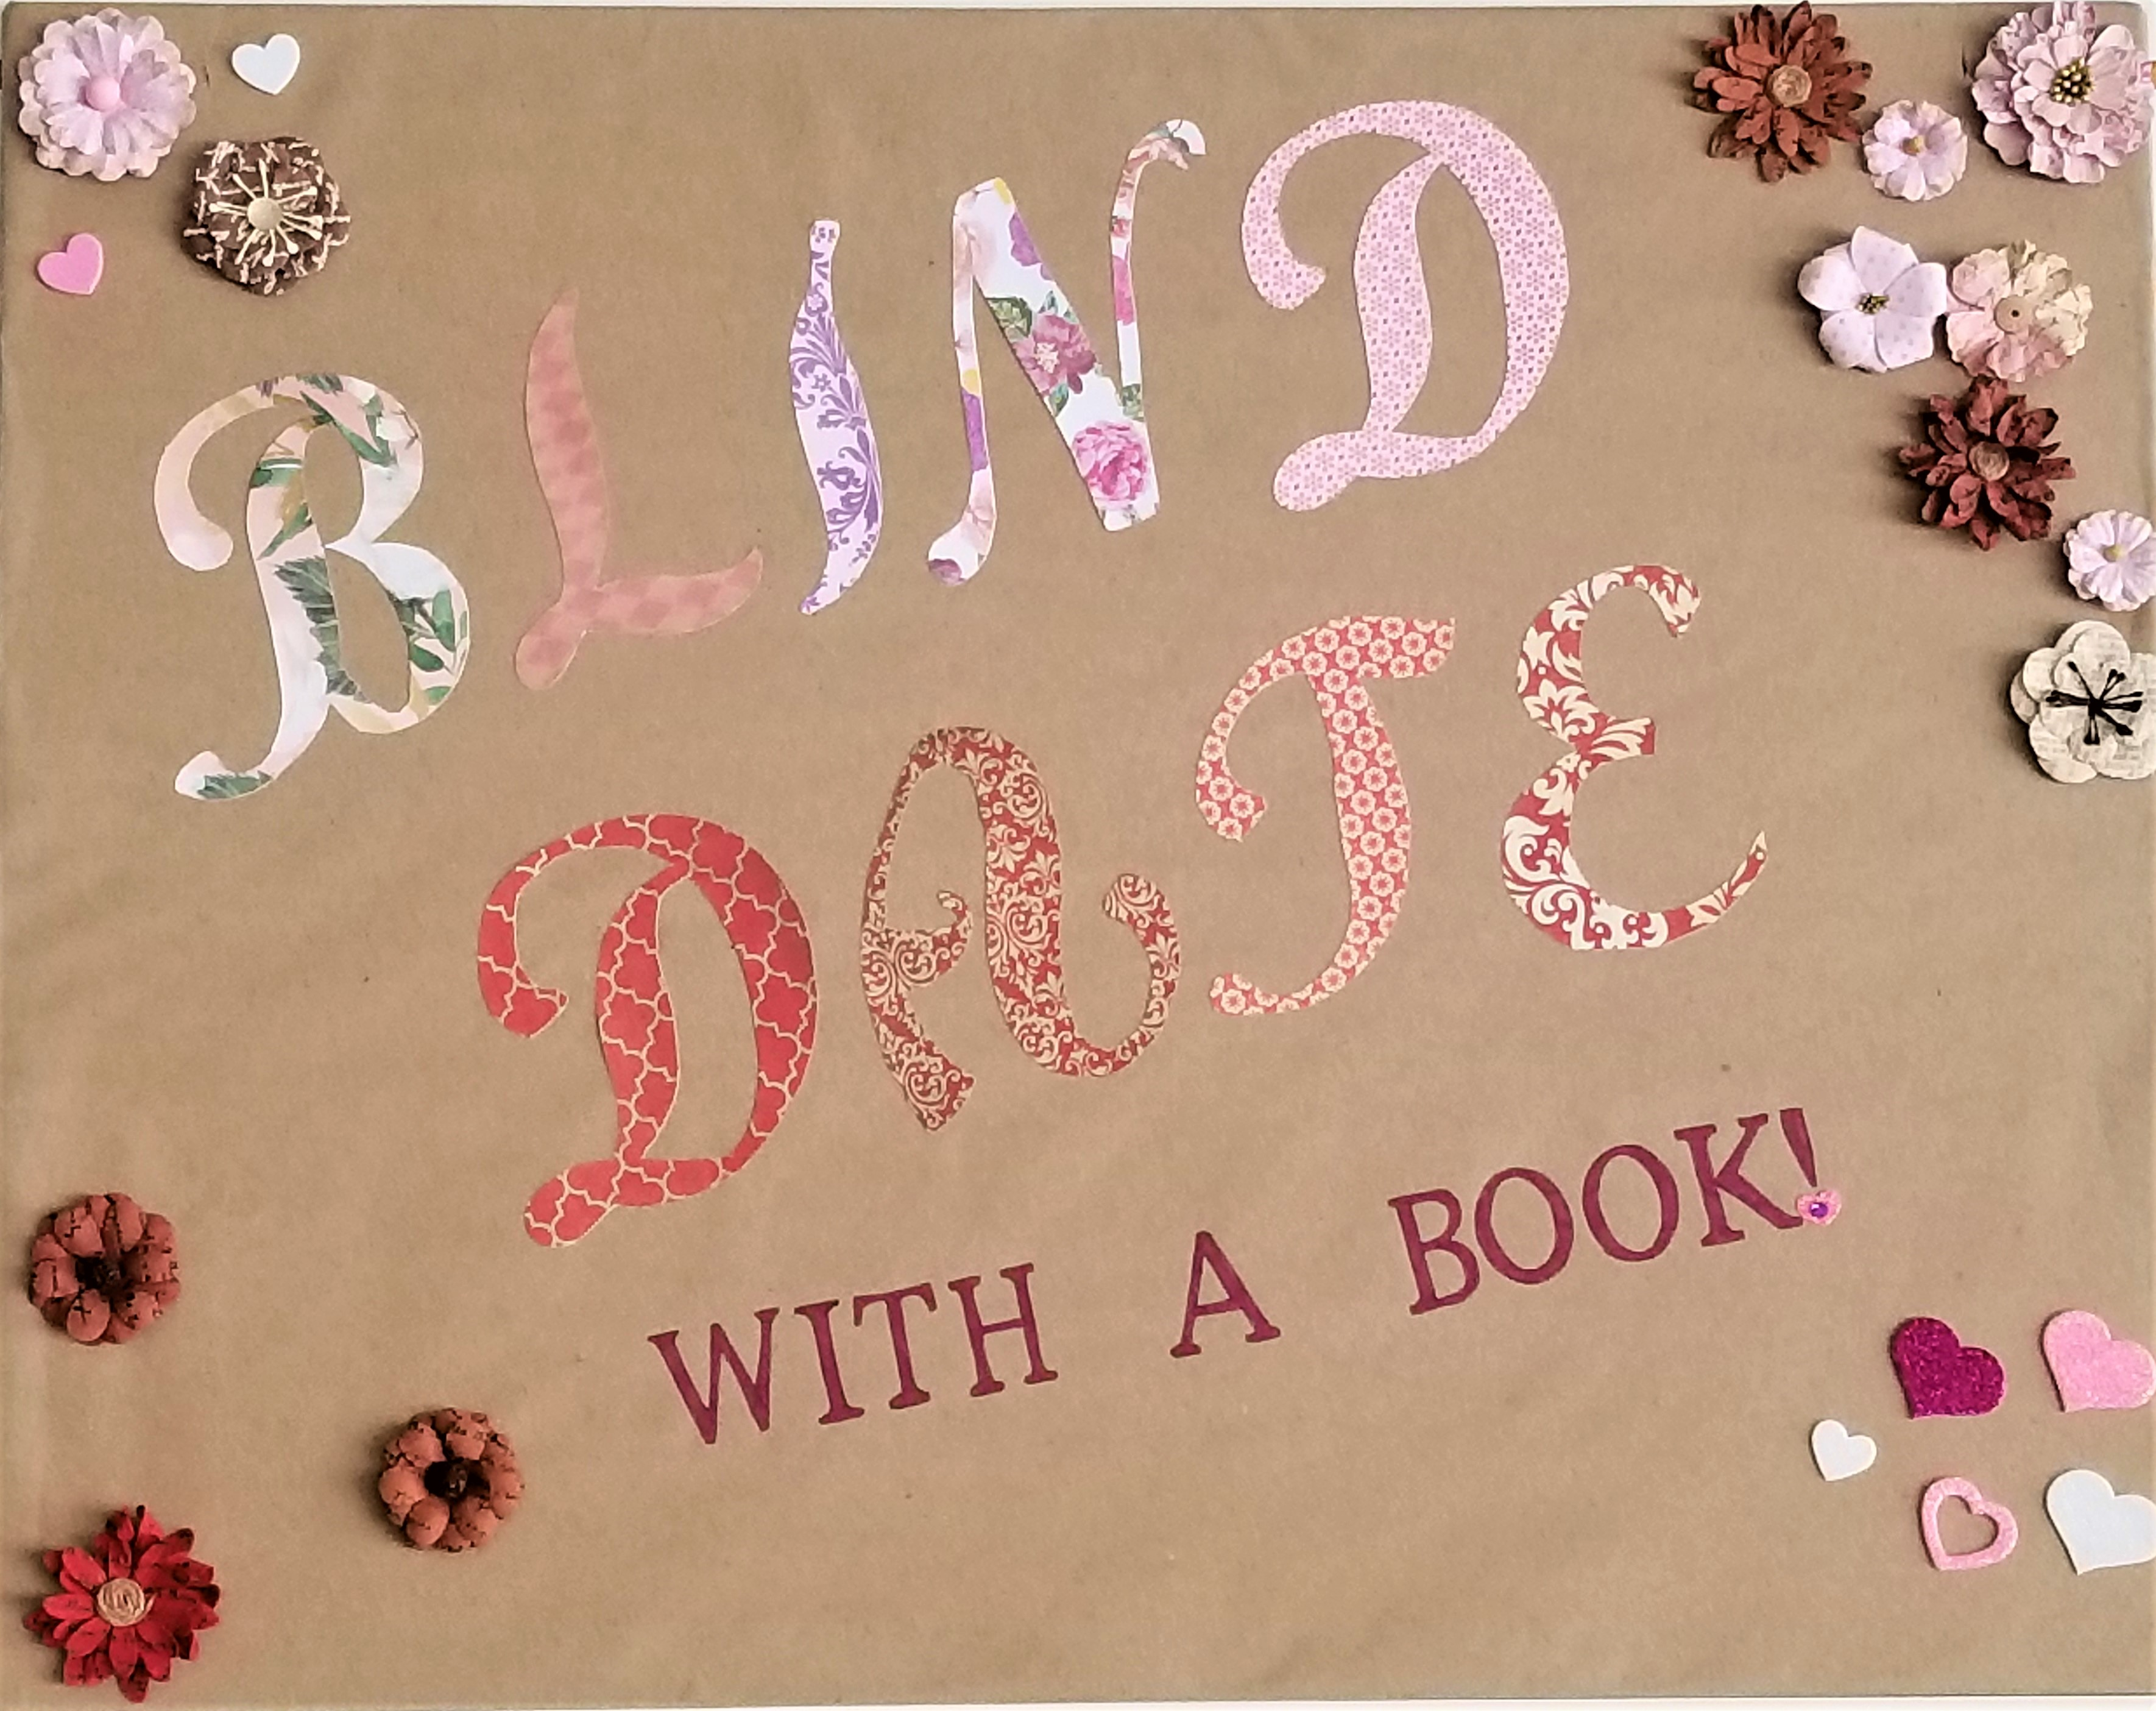 blind date events near me